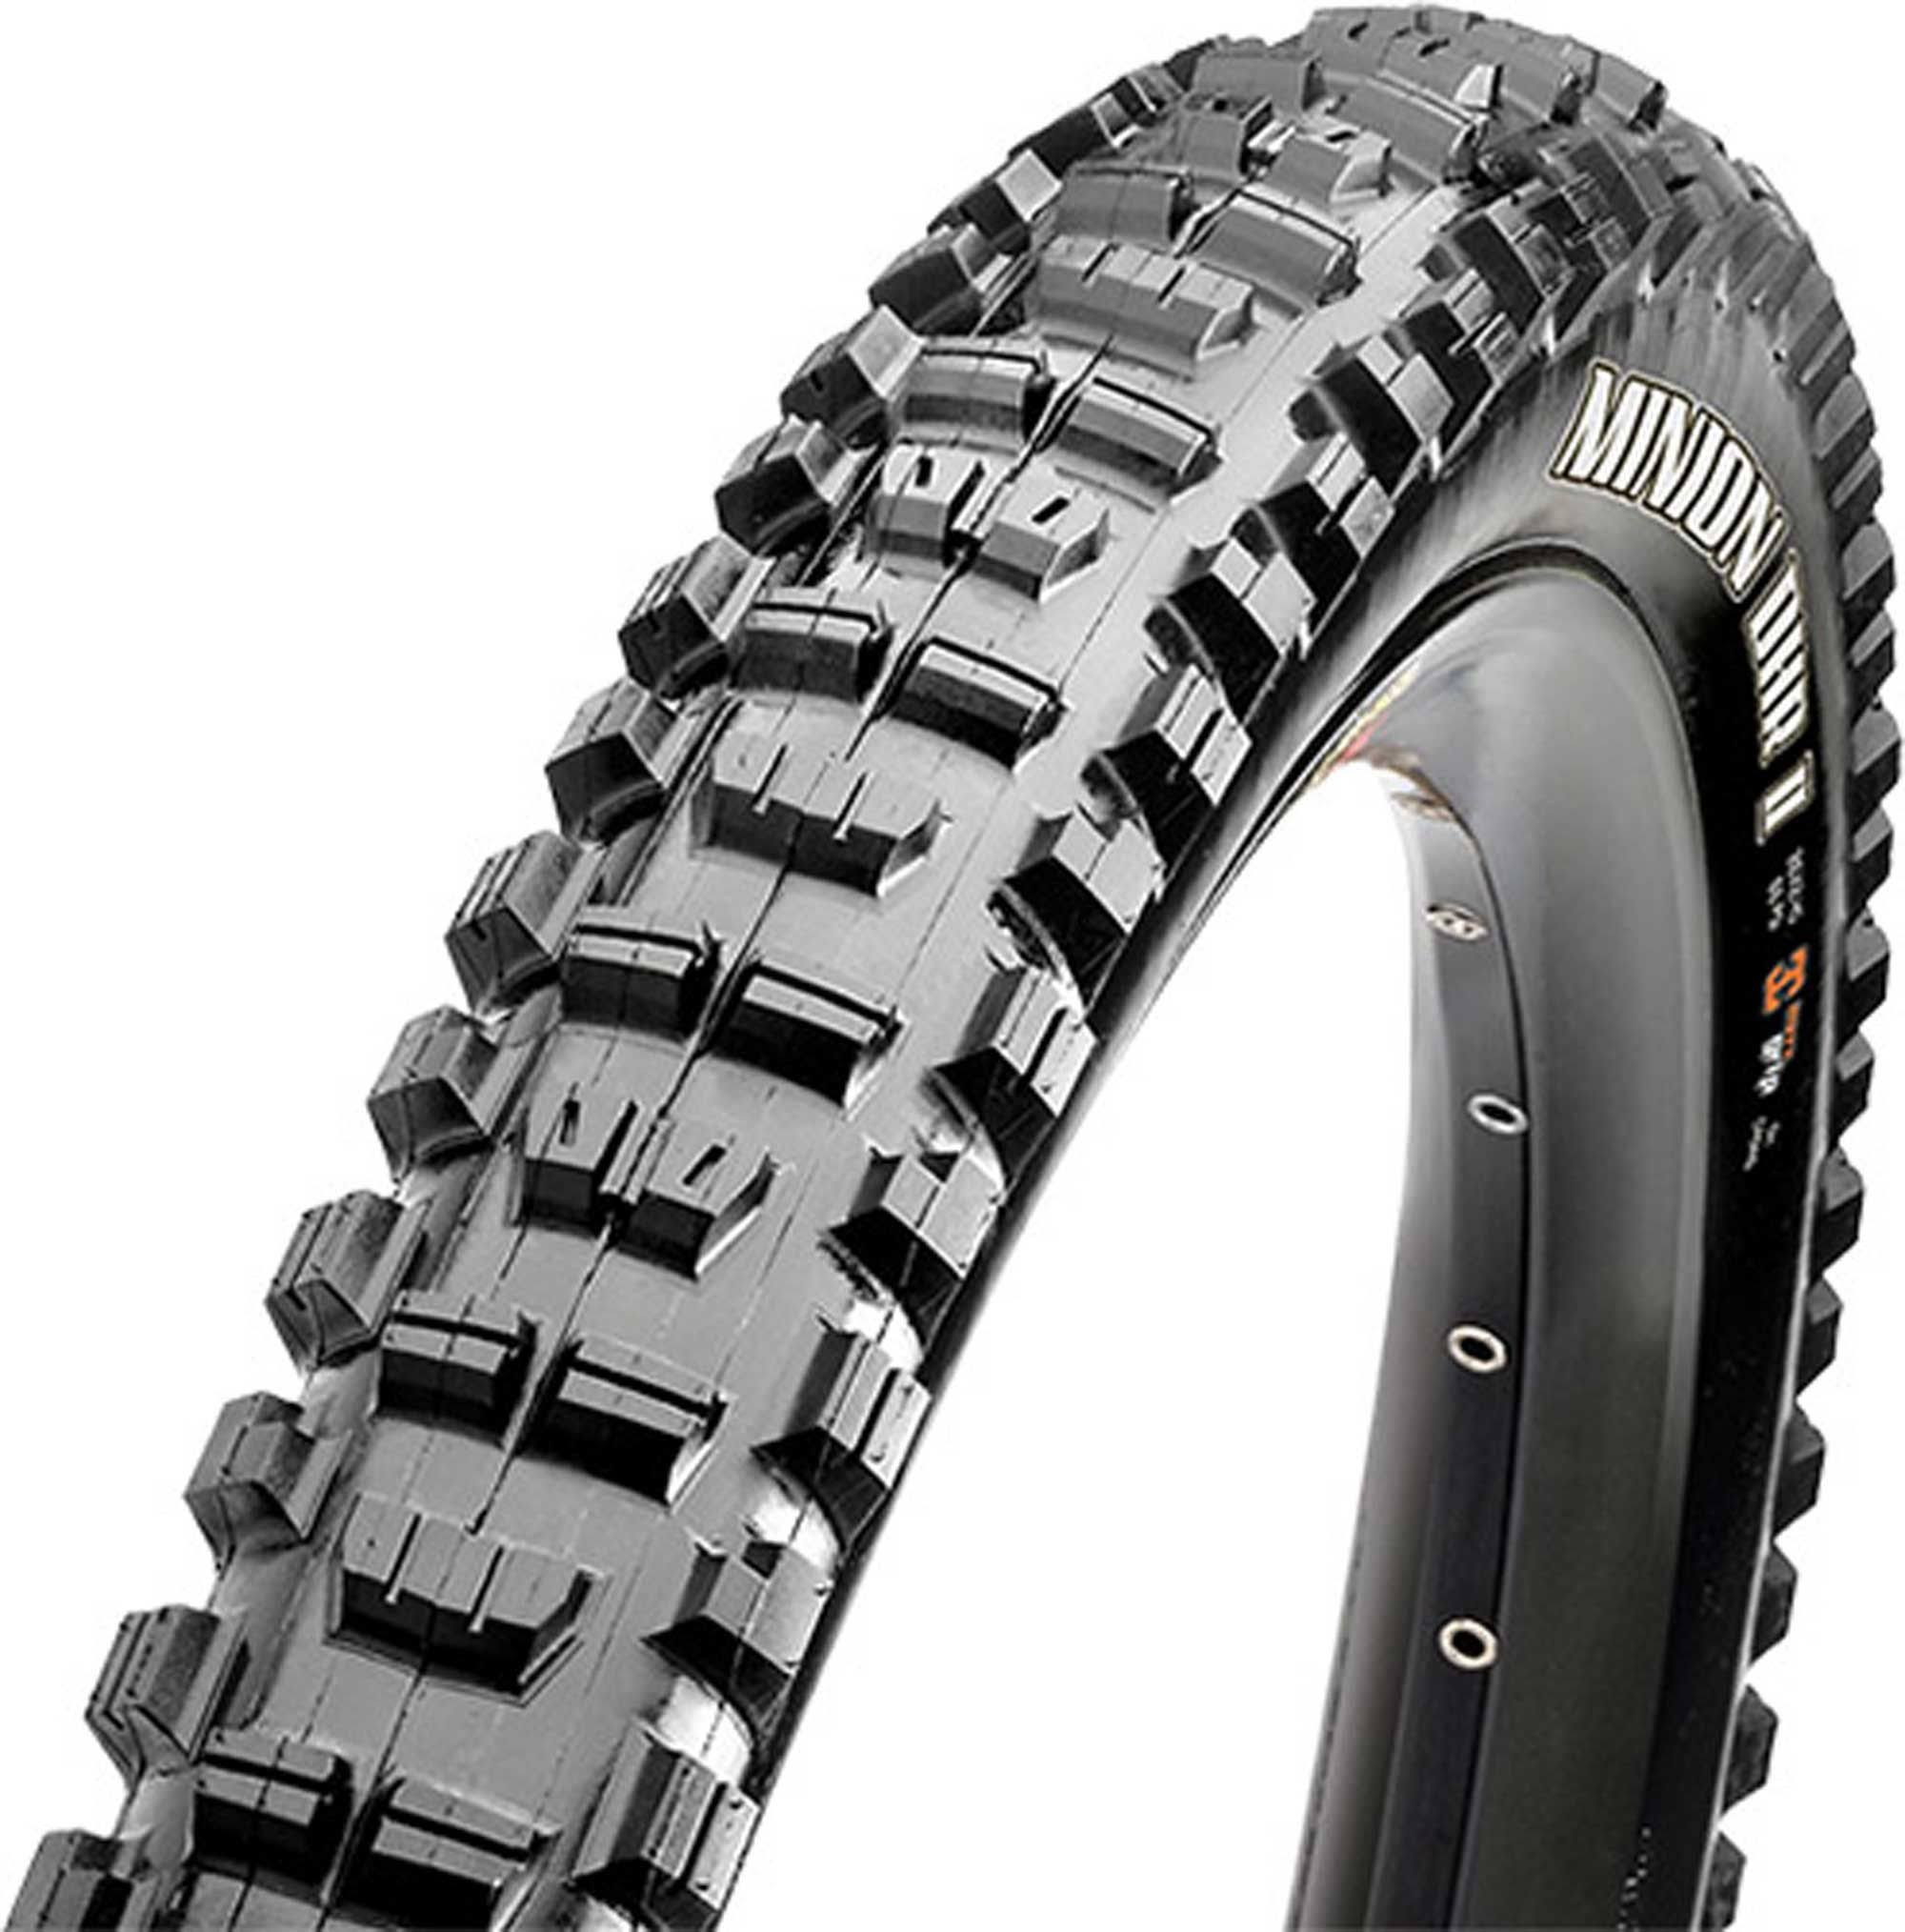 "Maxxis EXO 3C Triple Compound MaxxTerra Minion DHR II Tubeless Folding Tire - 27.5"" X 2.3"", Black"